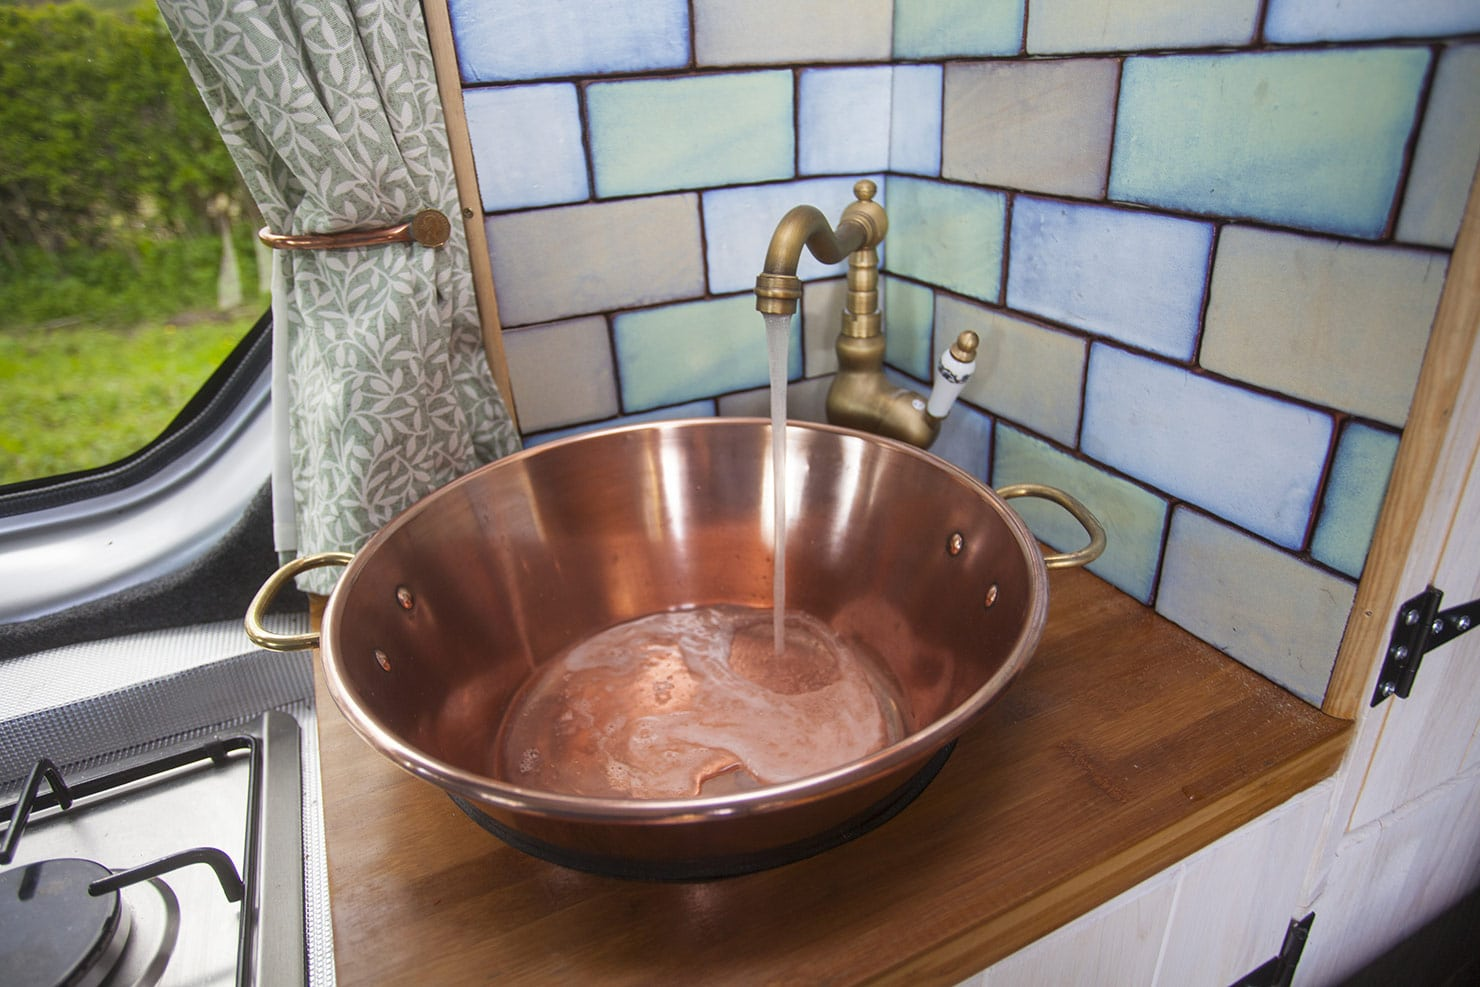 Running water on tap, want it hot? lift out the sink and heat on the hob... simple! :)